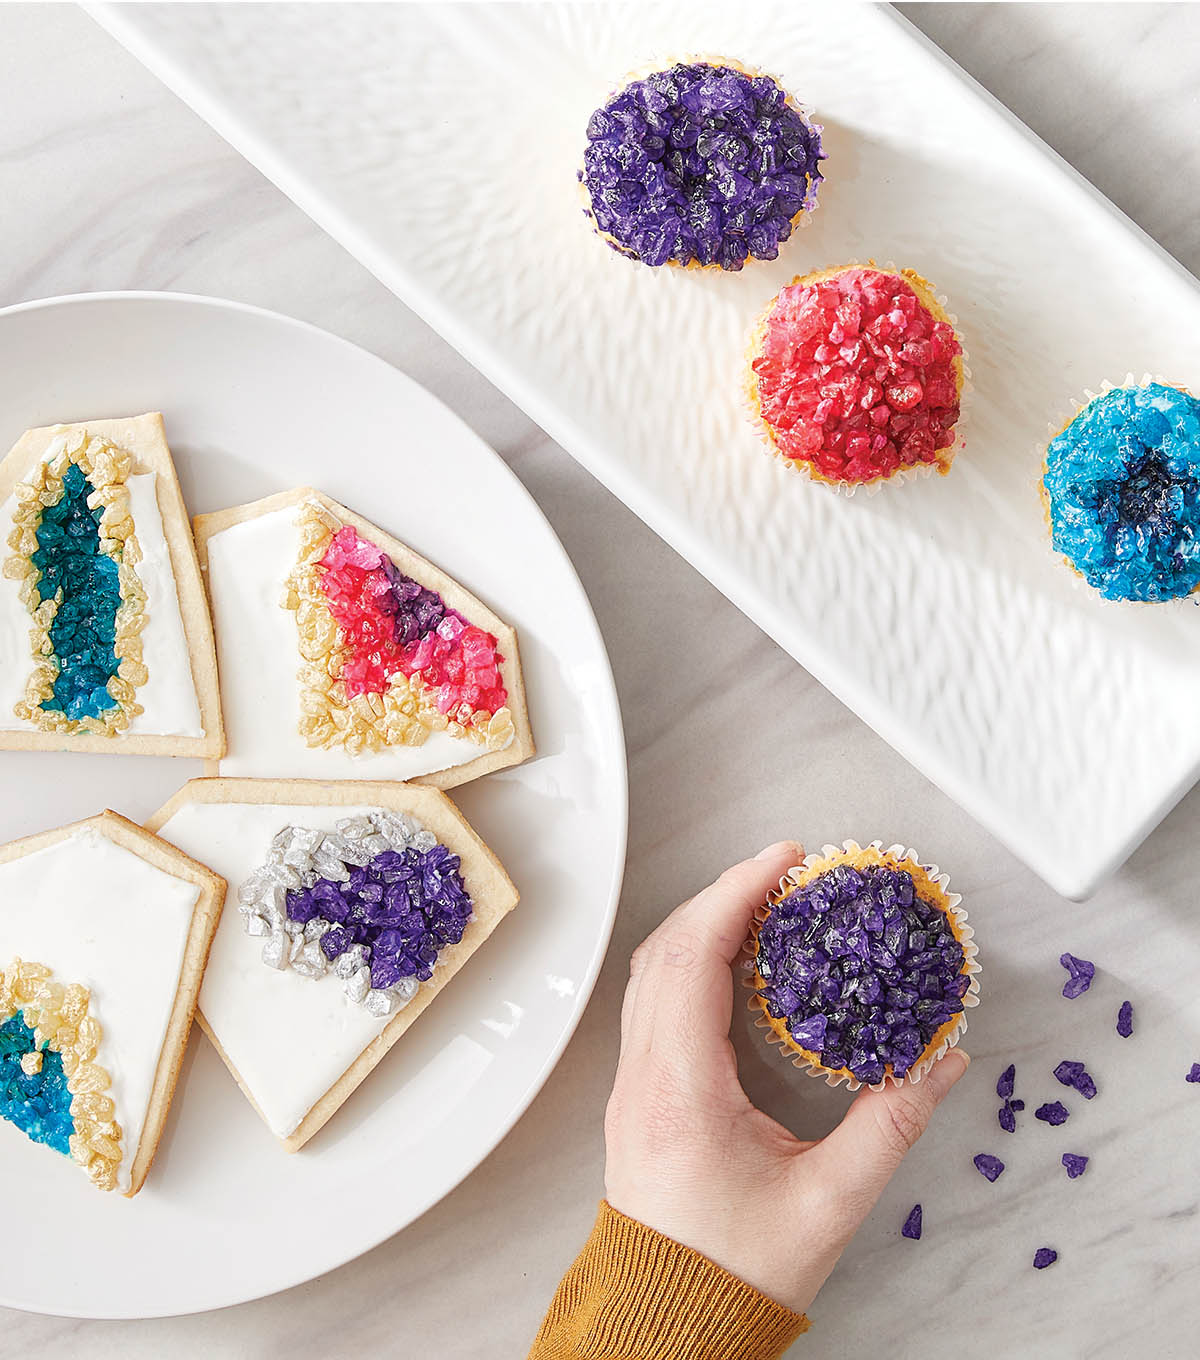 How To Make Geode Cupcakes and Cookies